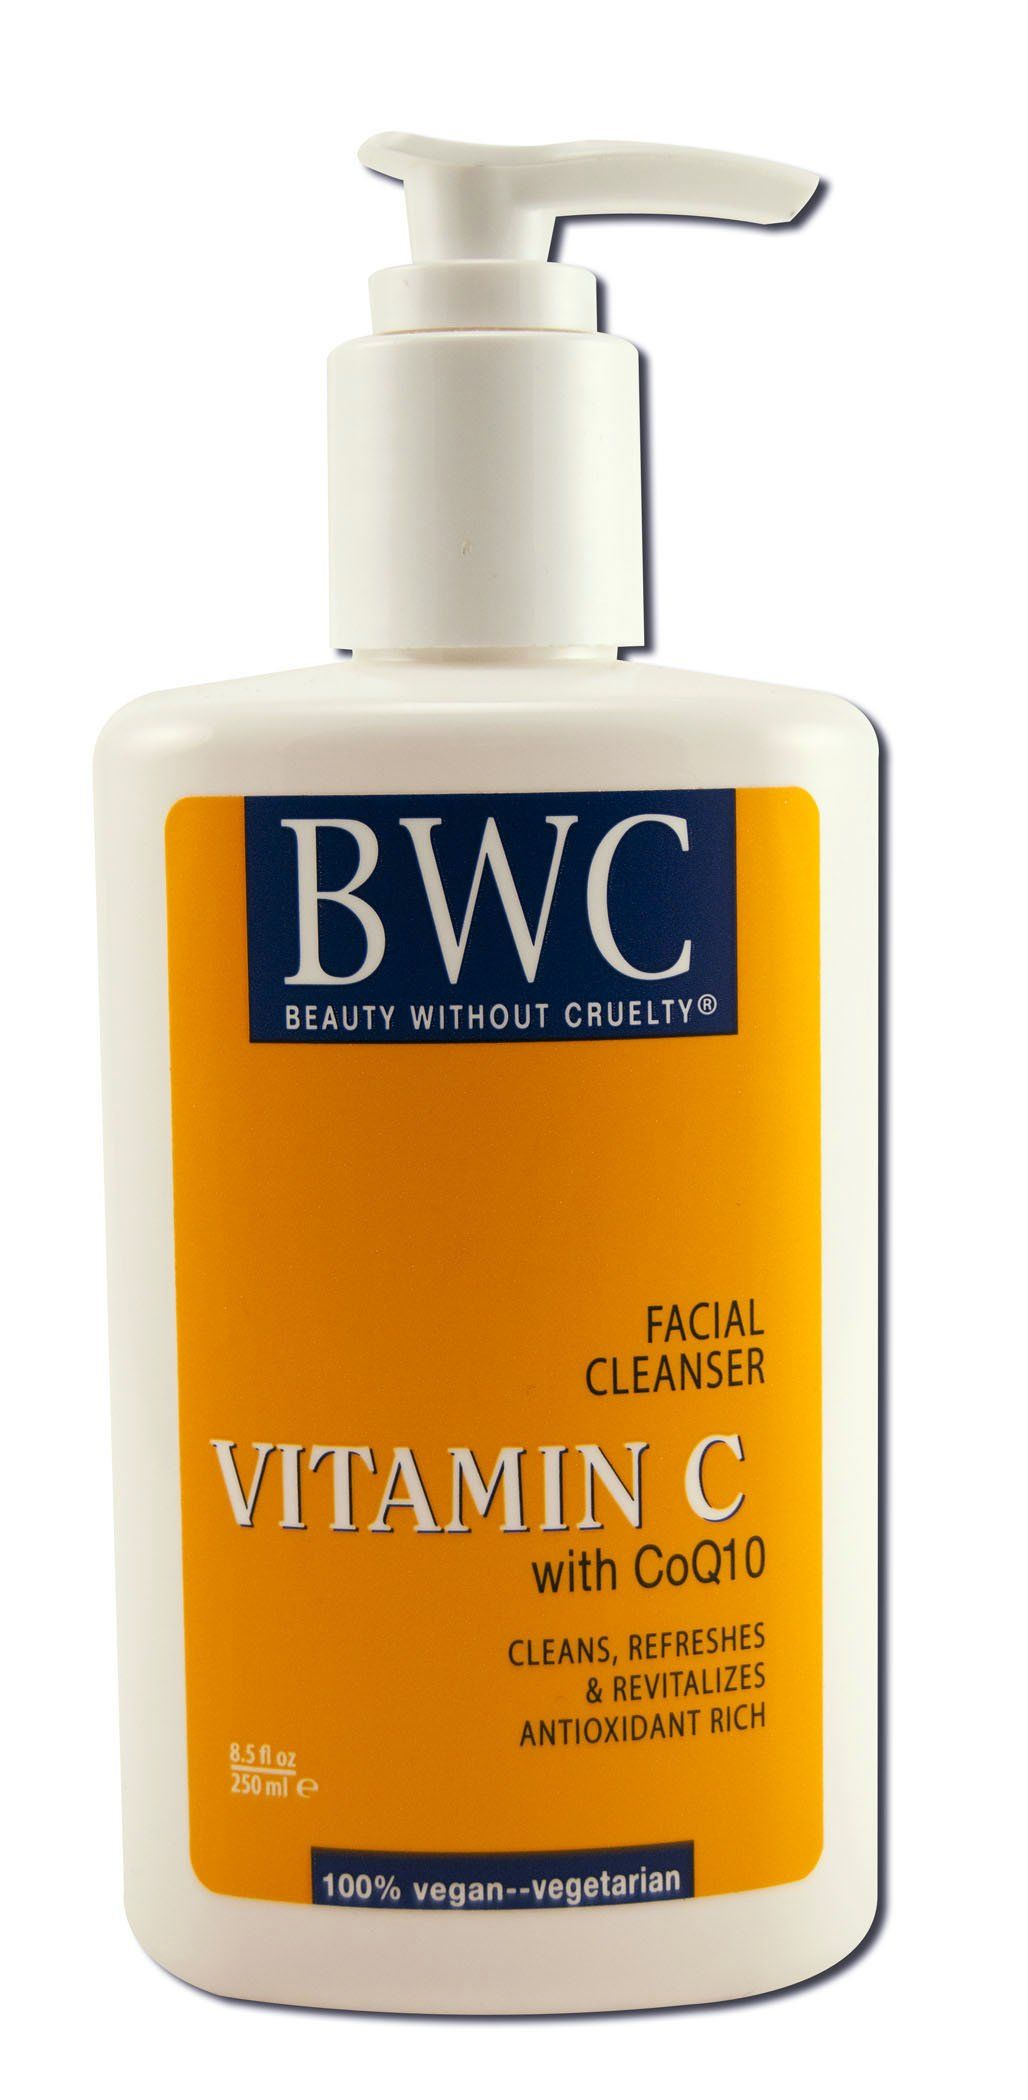 Beauty Without Cruelty Facial Cleanser Vitamin C With Coq10 Gentle Enough For Daily Use And For Beauty Without Cruelty Facial Cleanser Organic Facial Cleanser